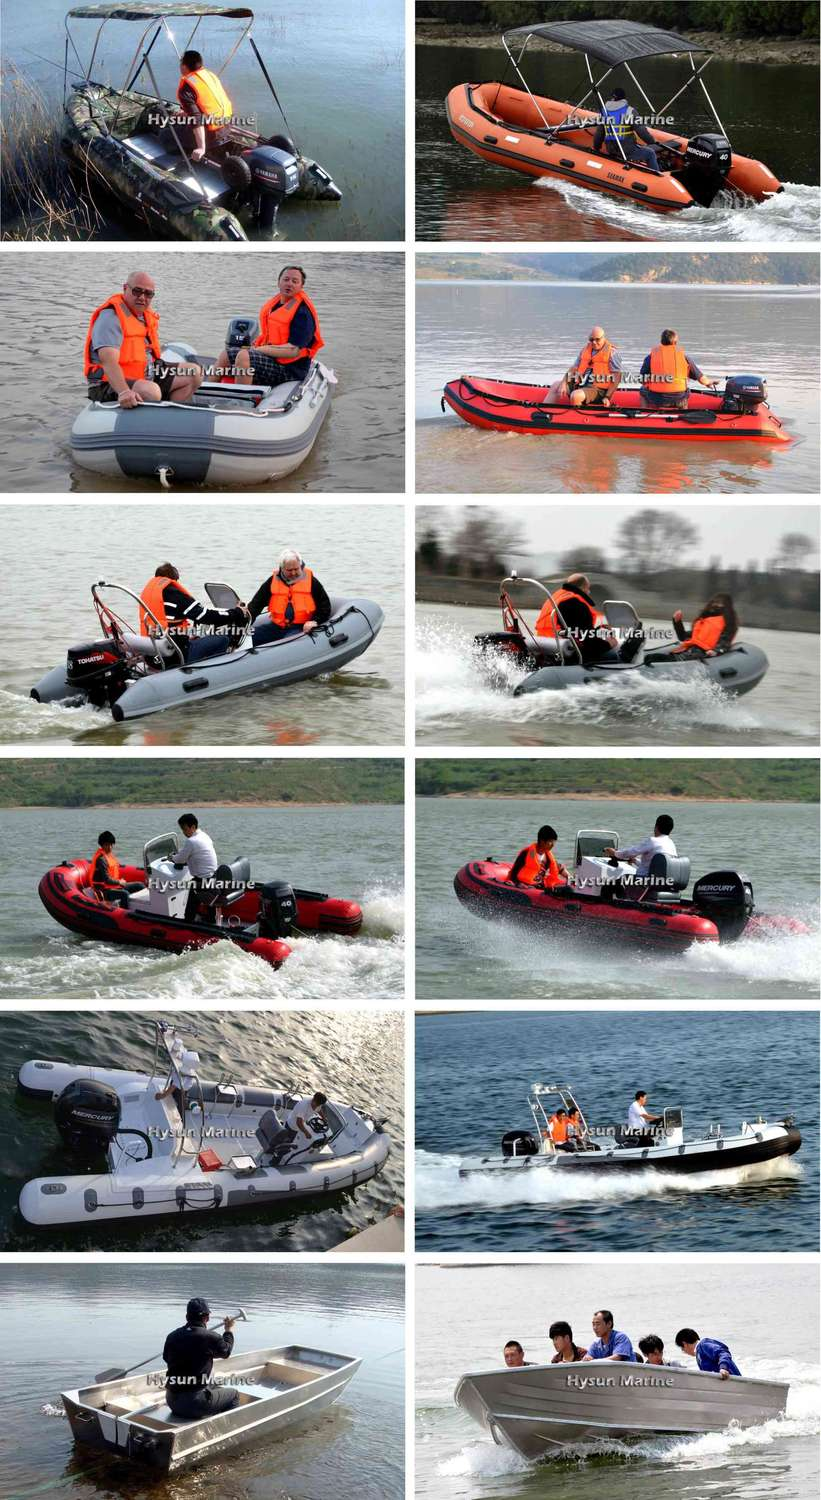 Hysun Marine Inflatable Boats Customers' Feedback